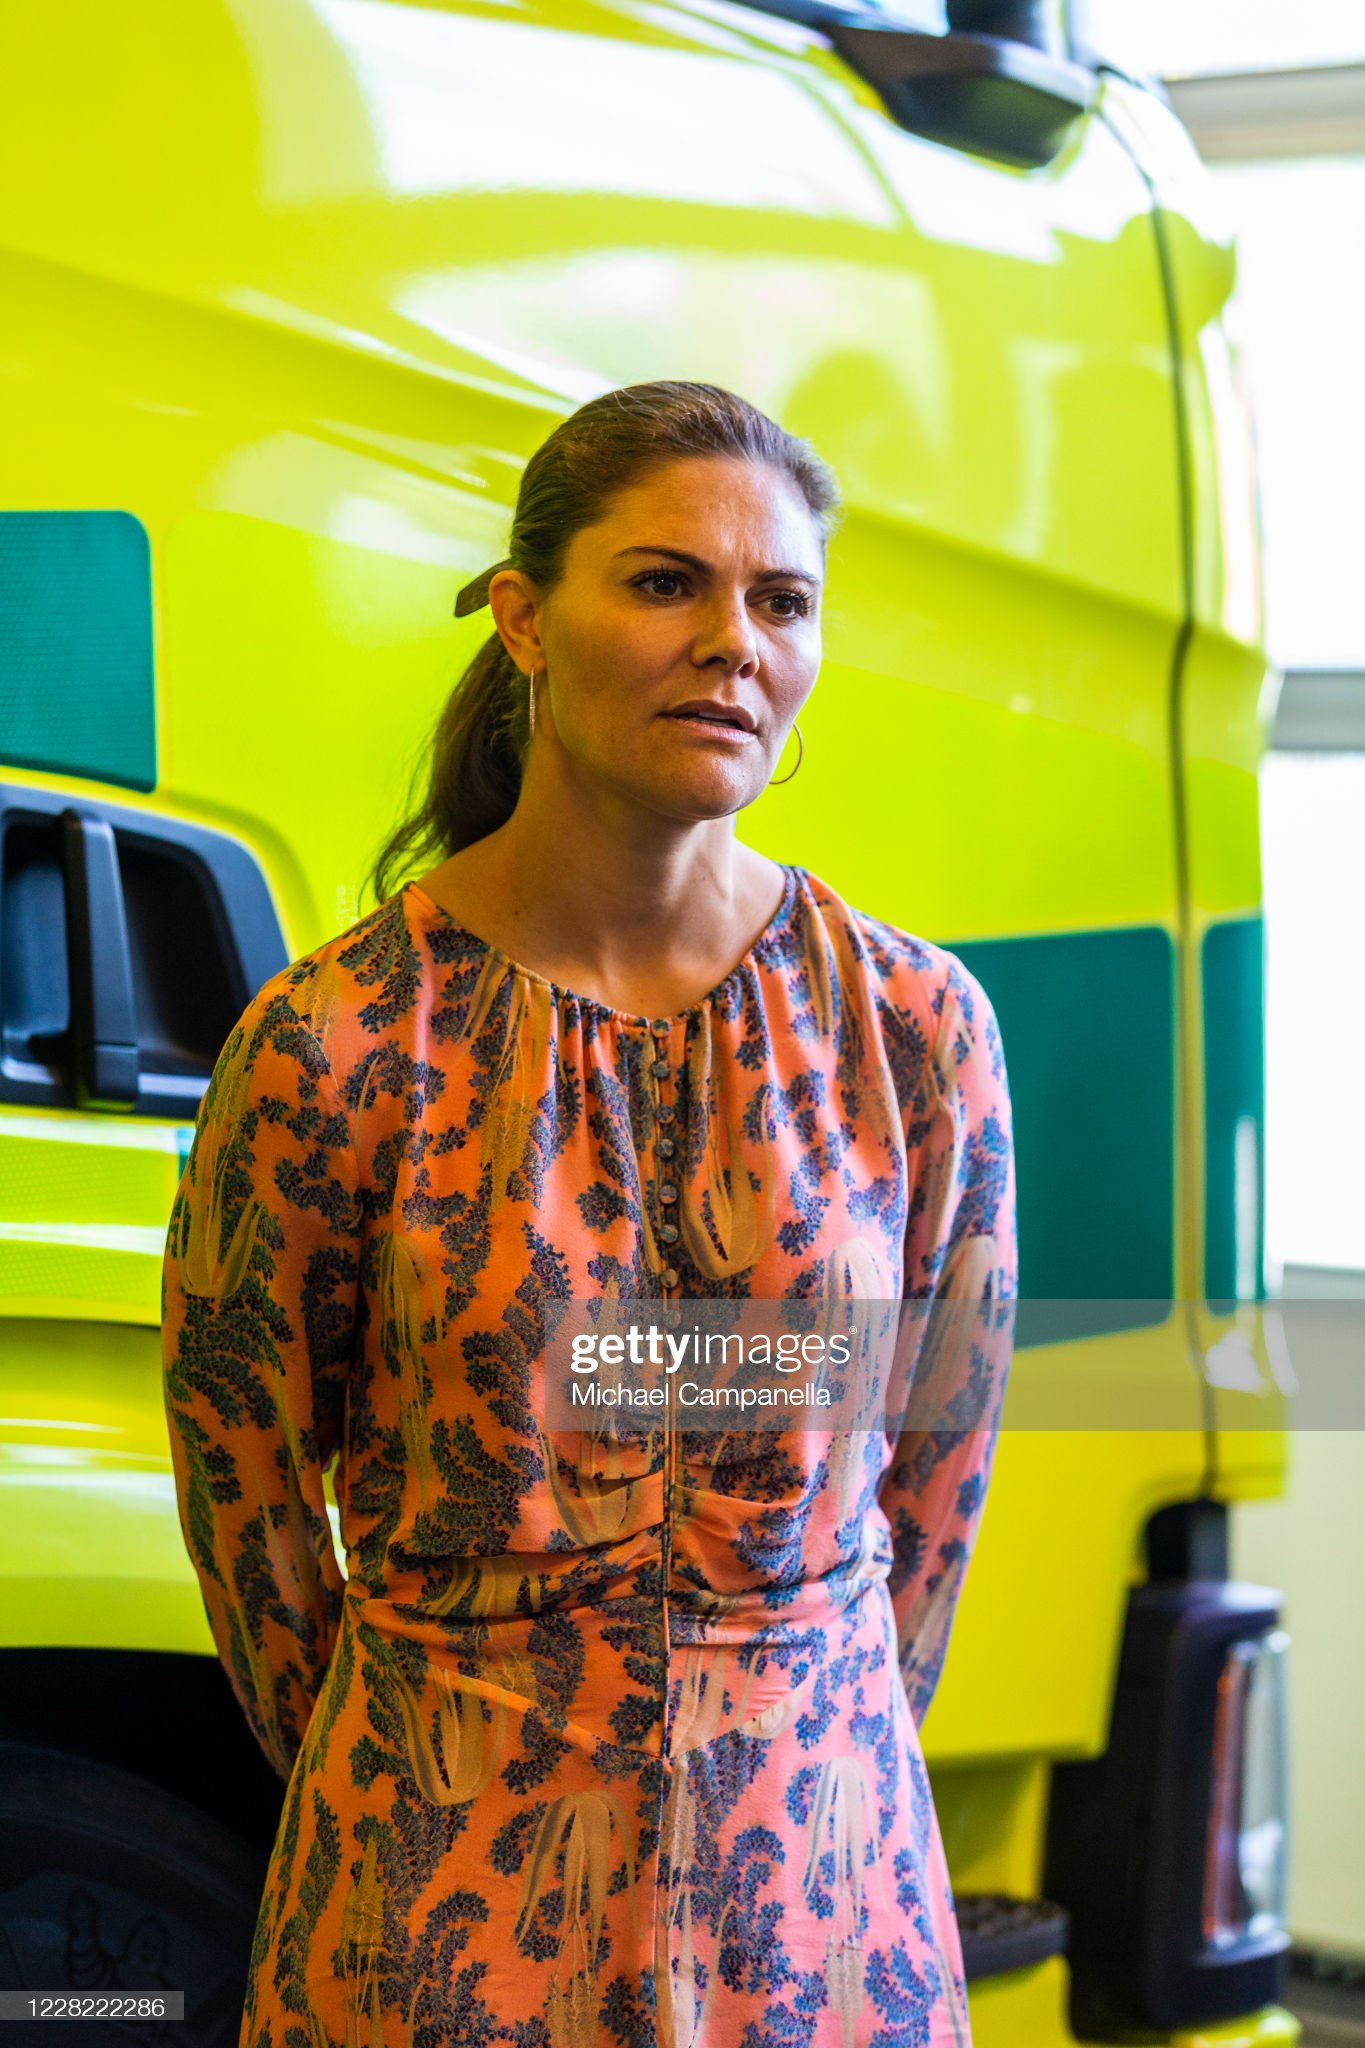 crown-princess-victoria-of-sweden-visits-an-ambulance-station-in-the-picture-id1228222286